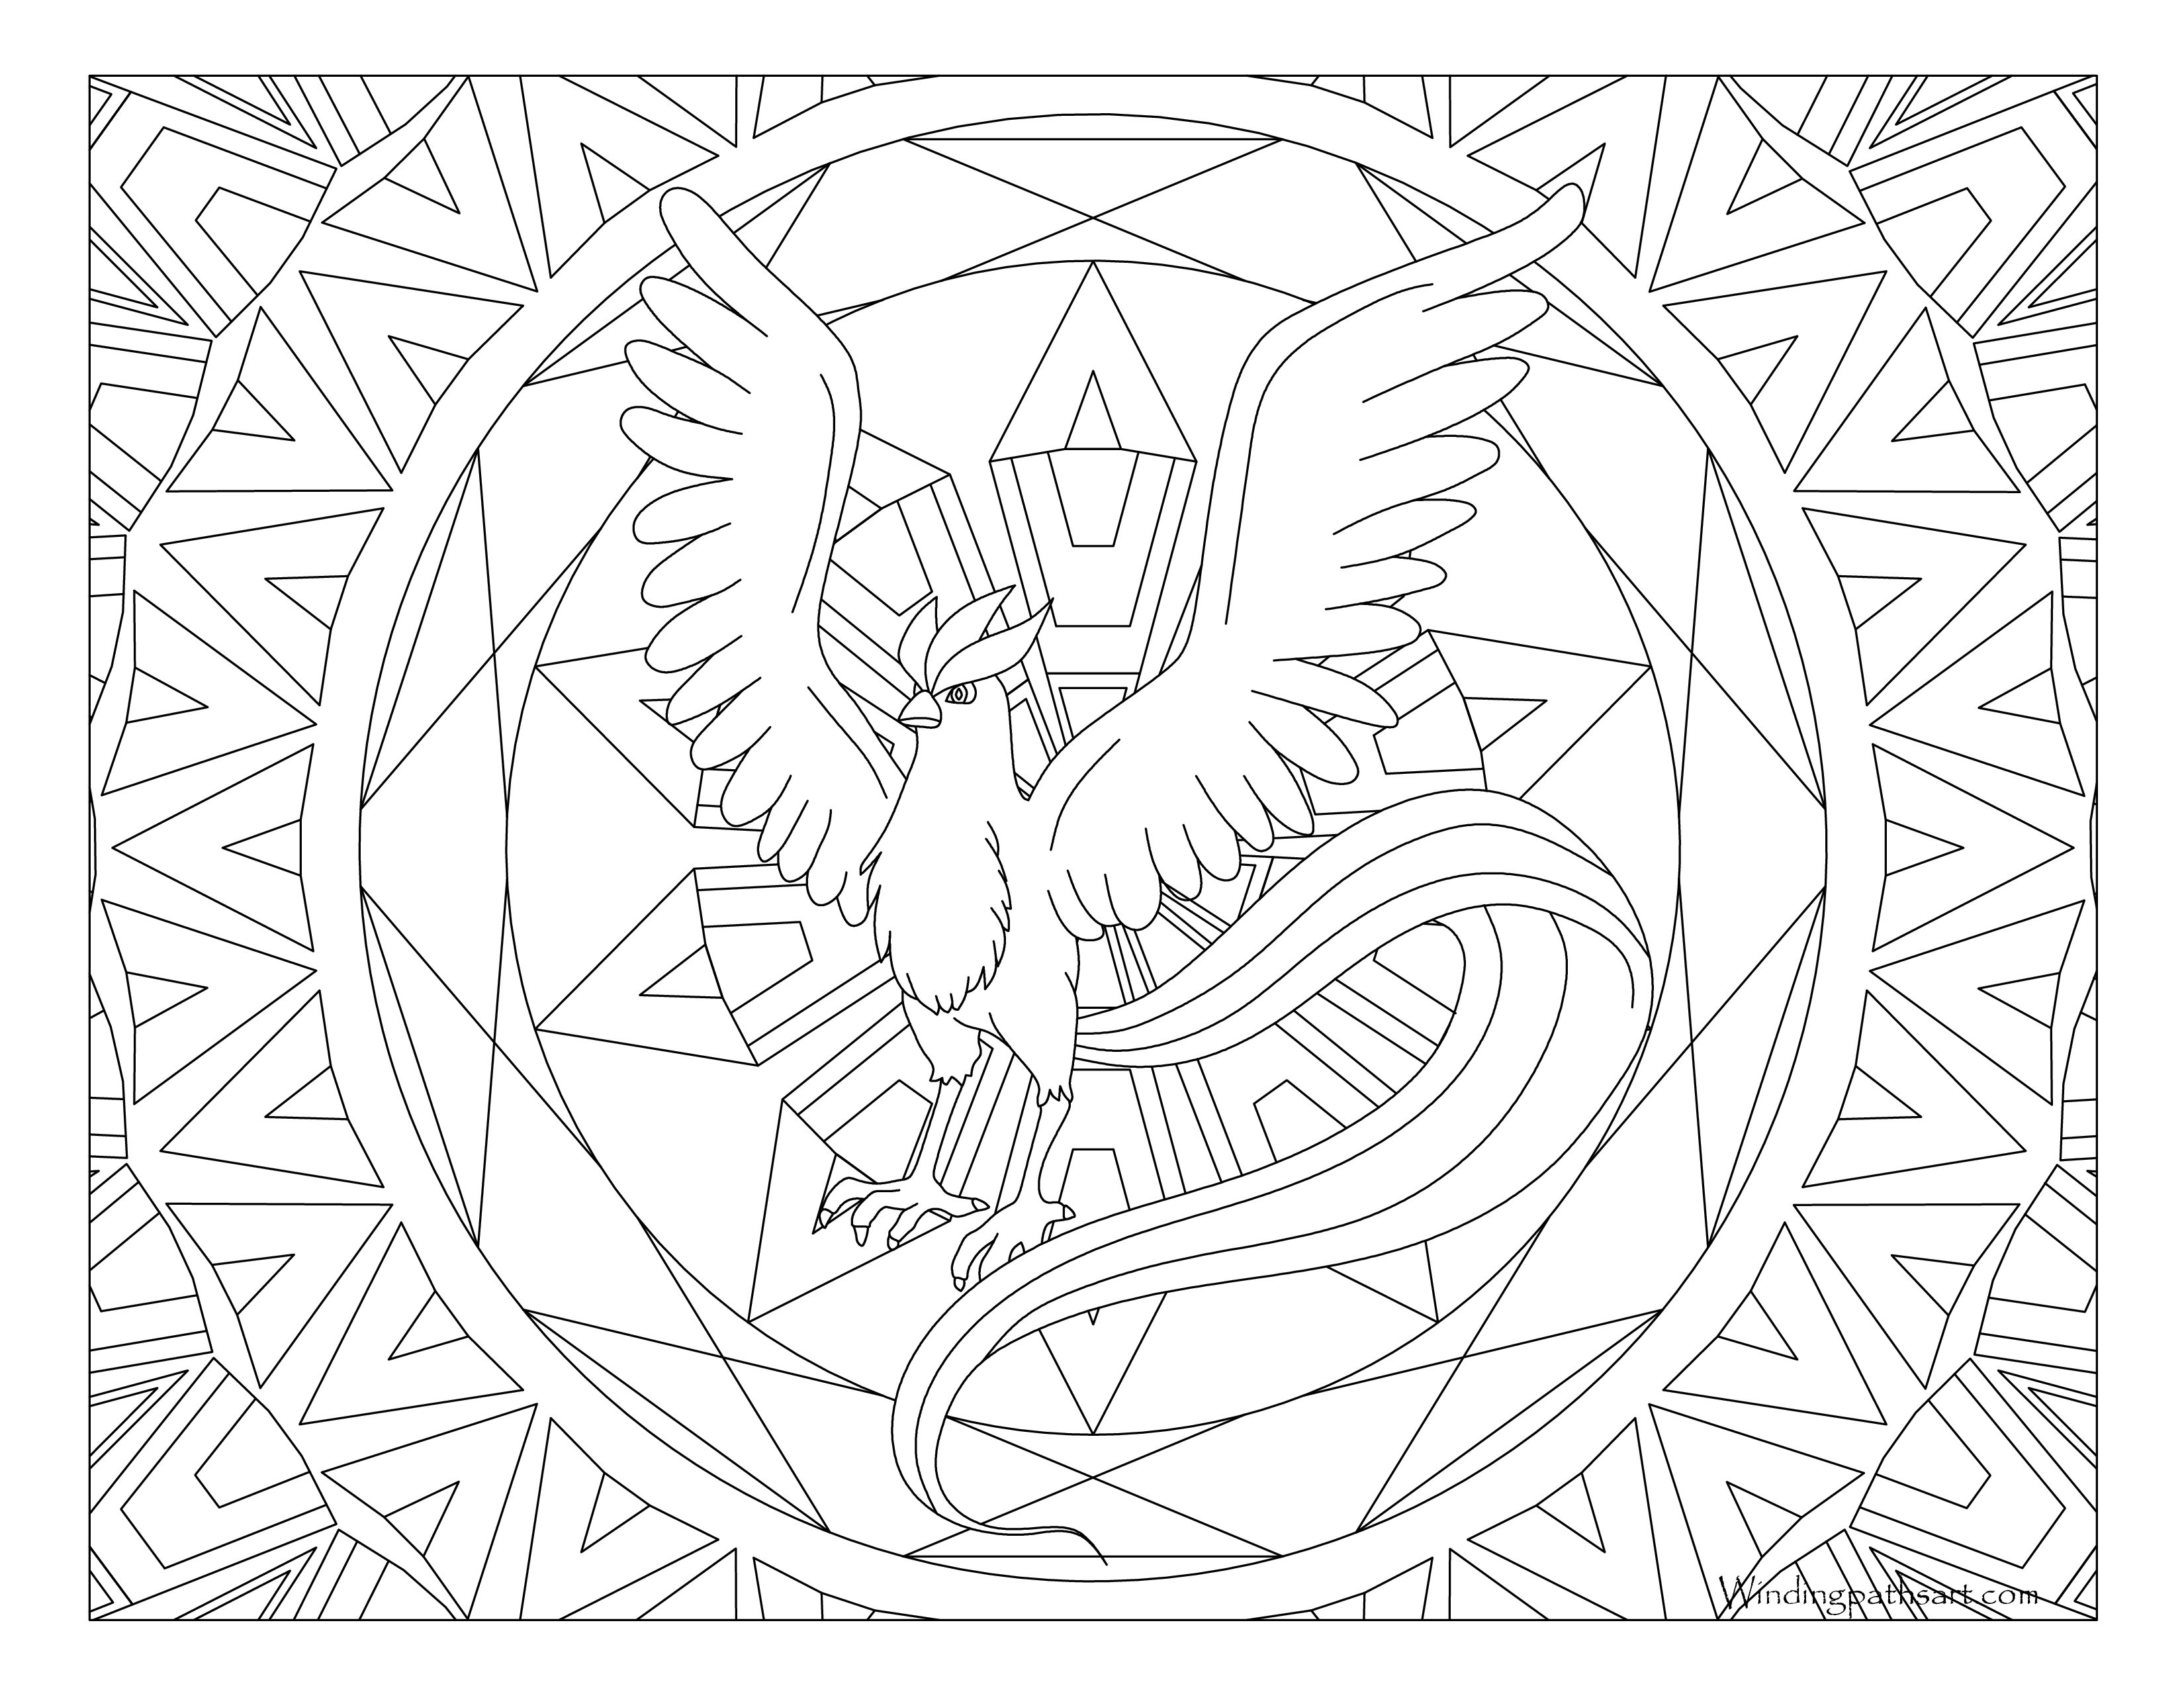 legendary zapdos pokemon coloring pages zapdos pokemon coloring pages printable free pokemon zapdos legendary coloring pages pokemon